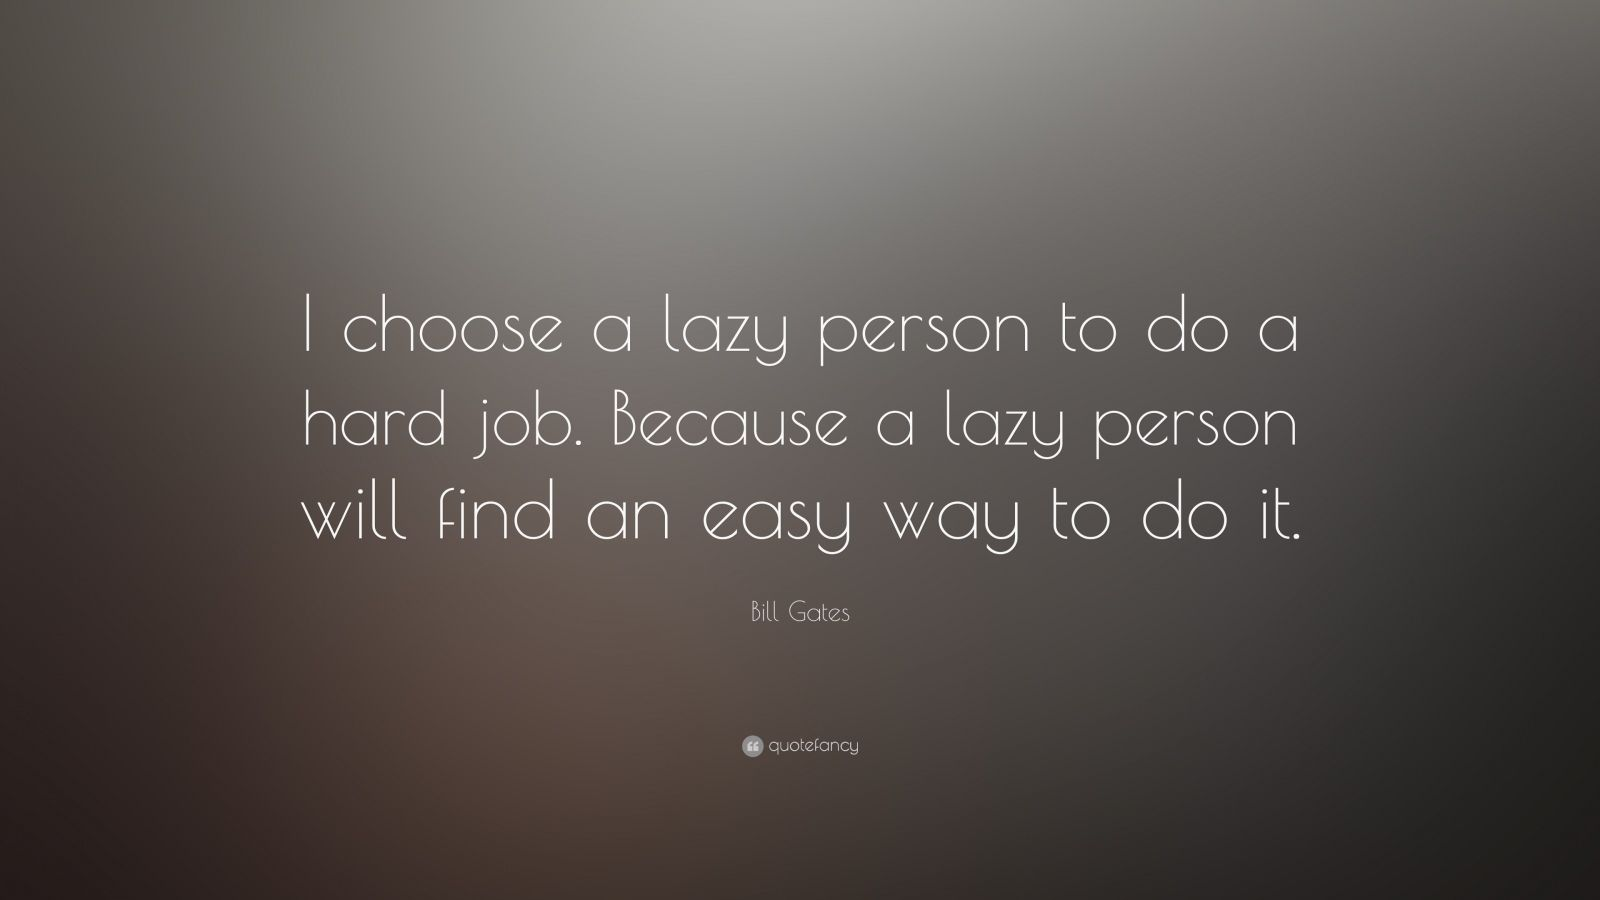 Bill Gates Quotes On Success Wallpaper Bill Gates Quote I Choose A Lazy Person To Do A Hard Job